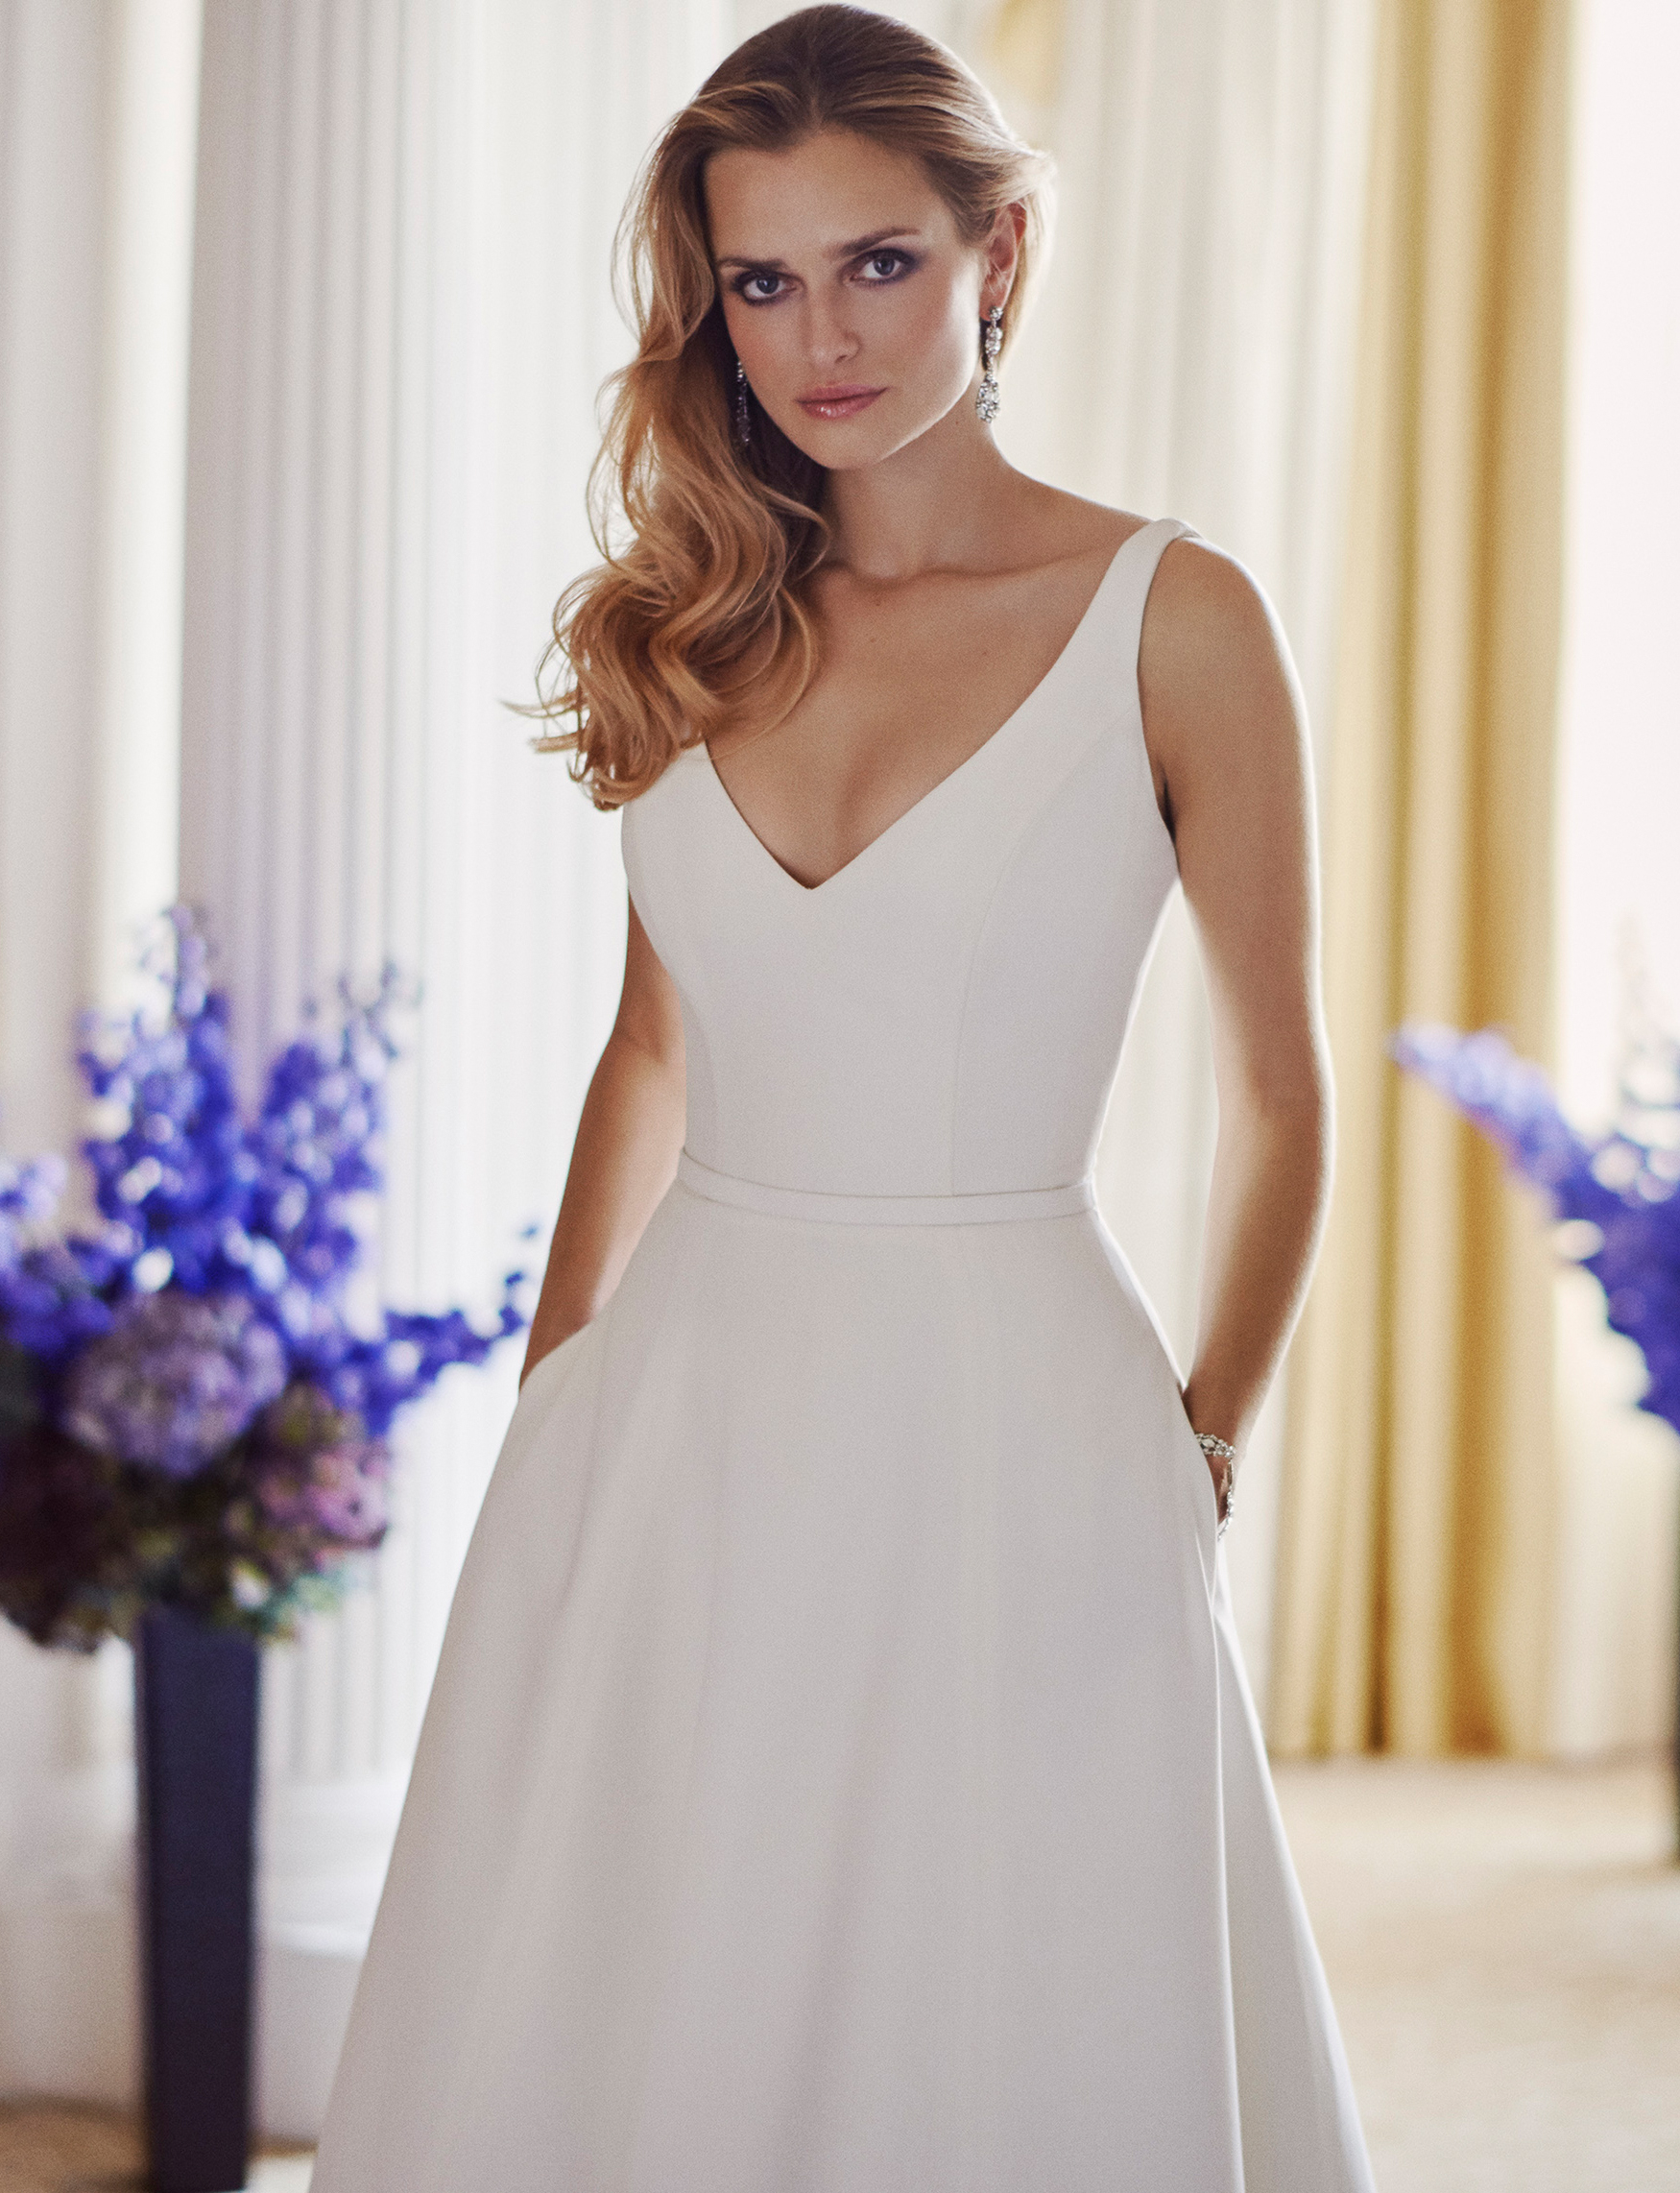 Lyla designer wedding dress by Caroline Castigliano